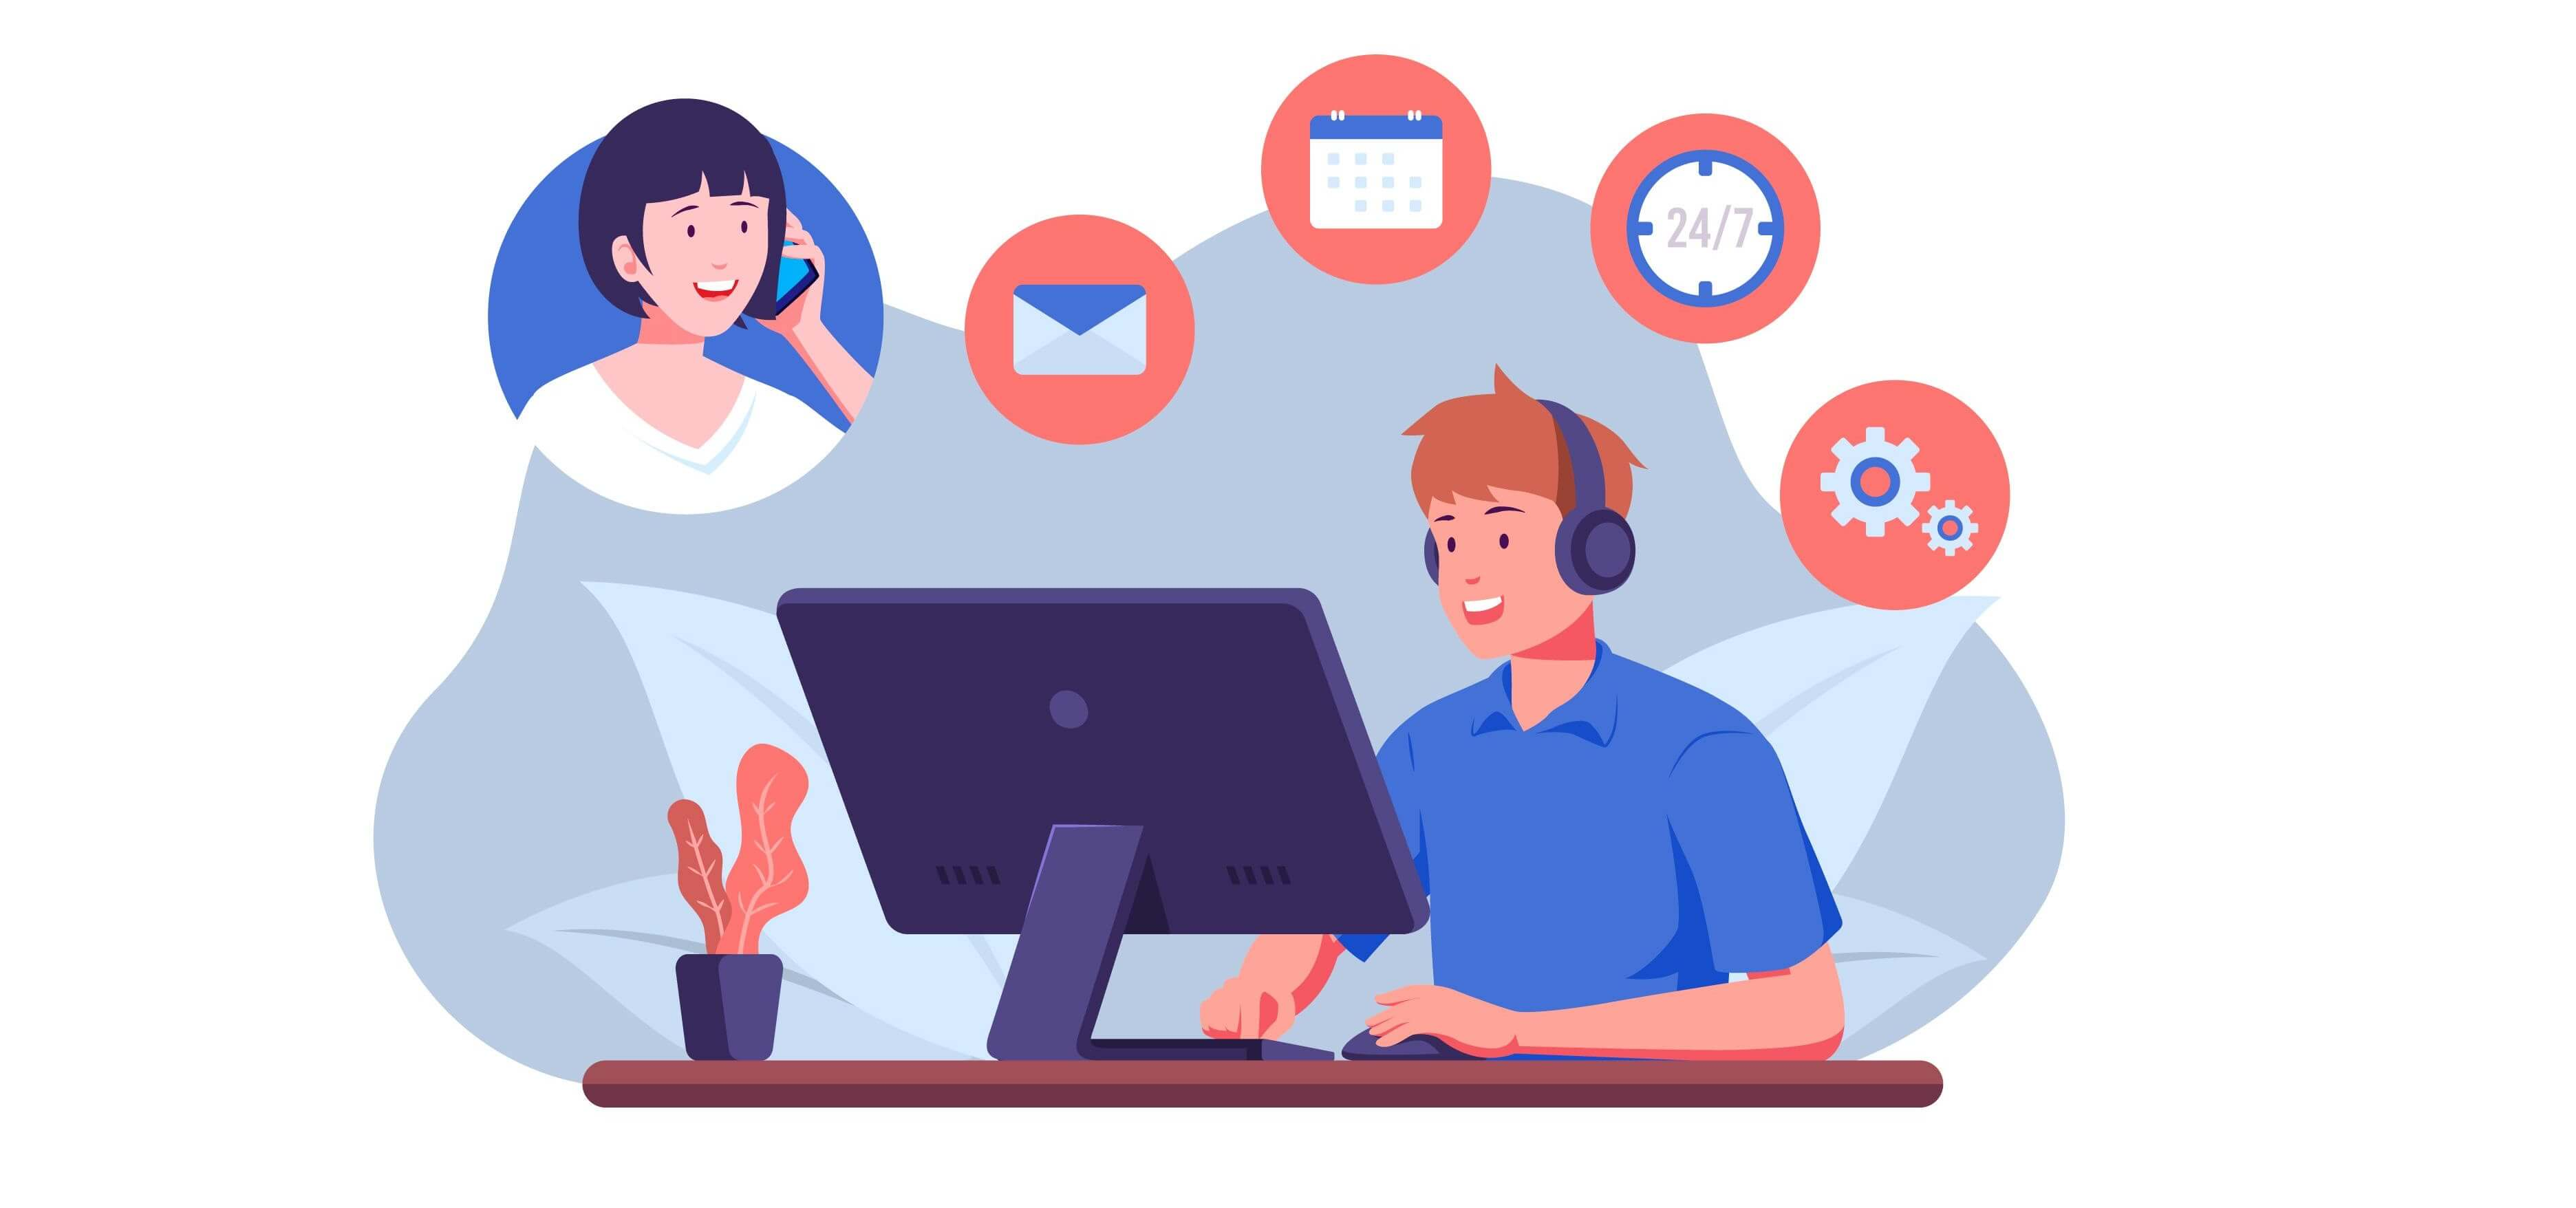 How to Contact Quotex Support